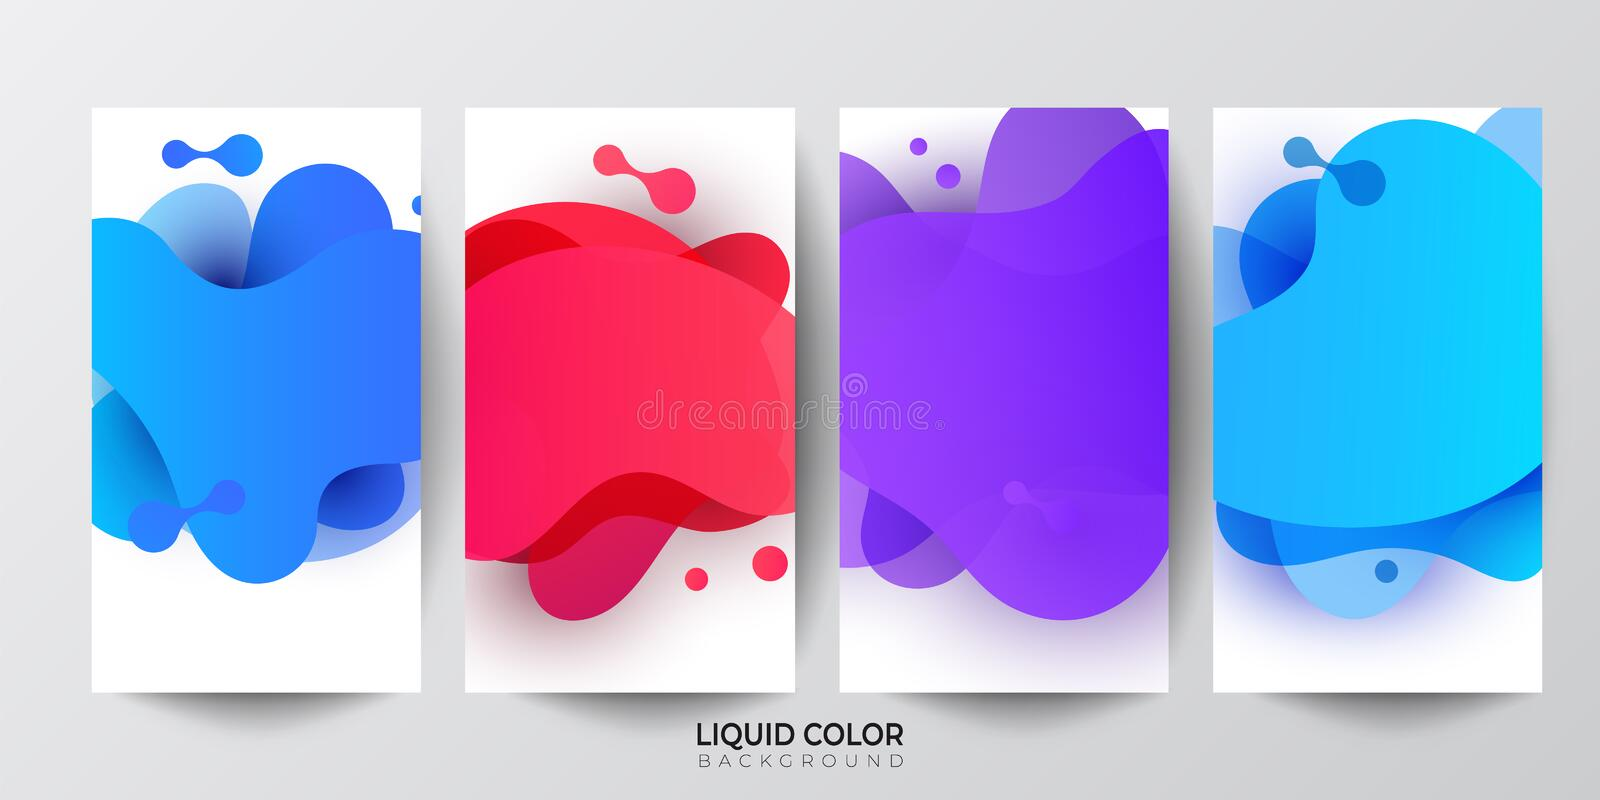 Modern fluid mobile sale banners template set for online shopping. royalty free illustration